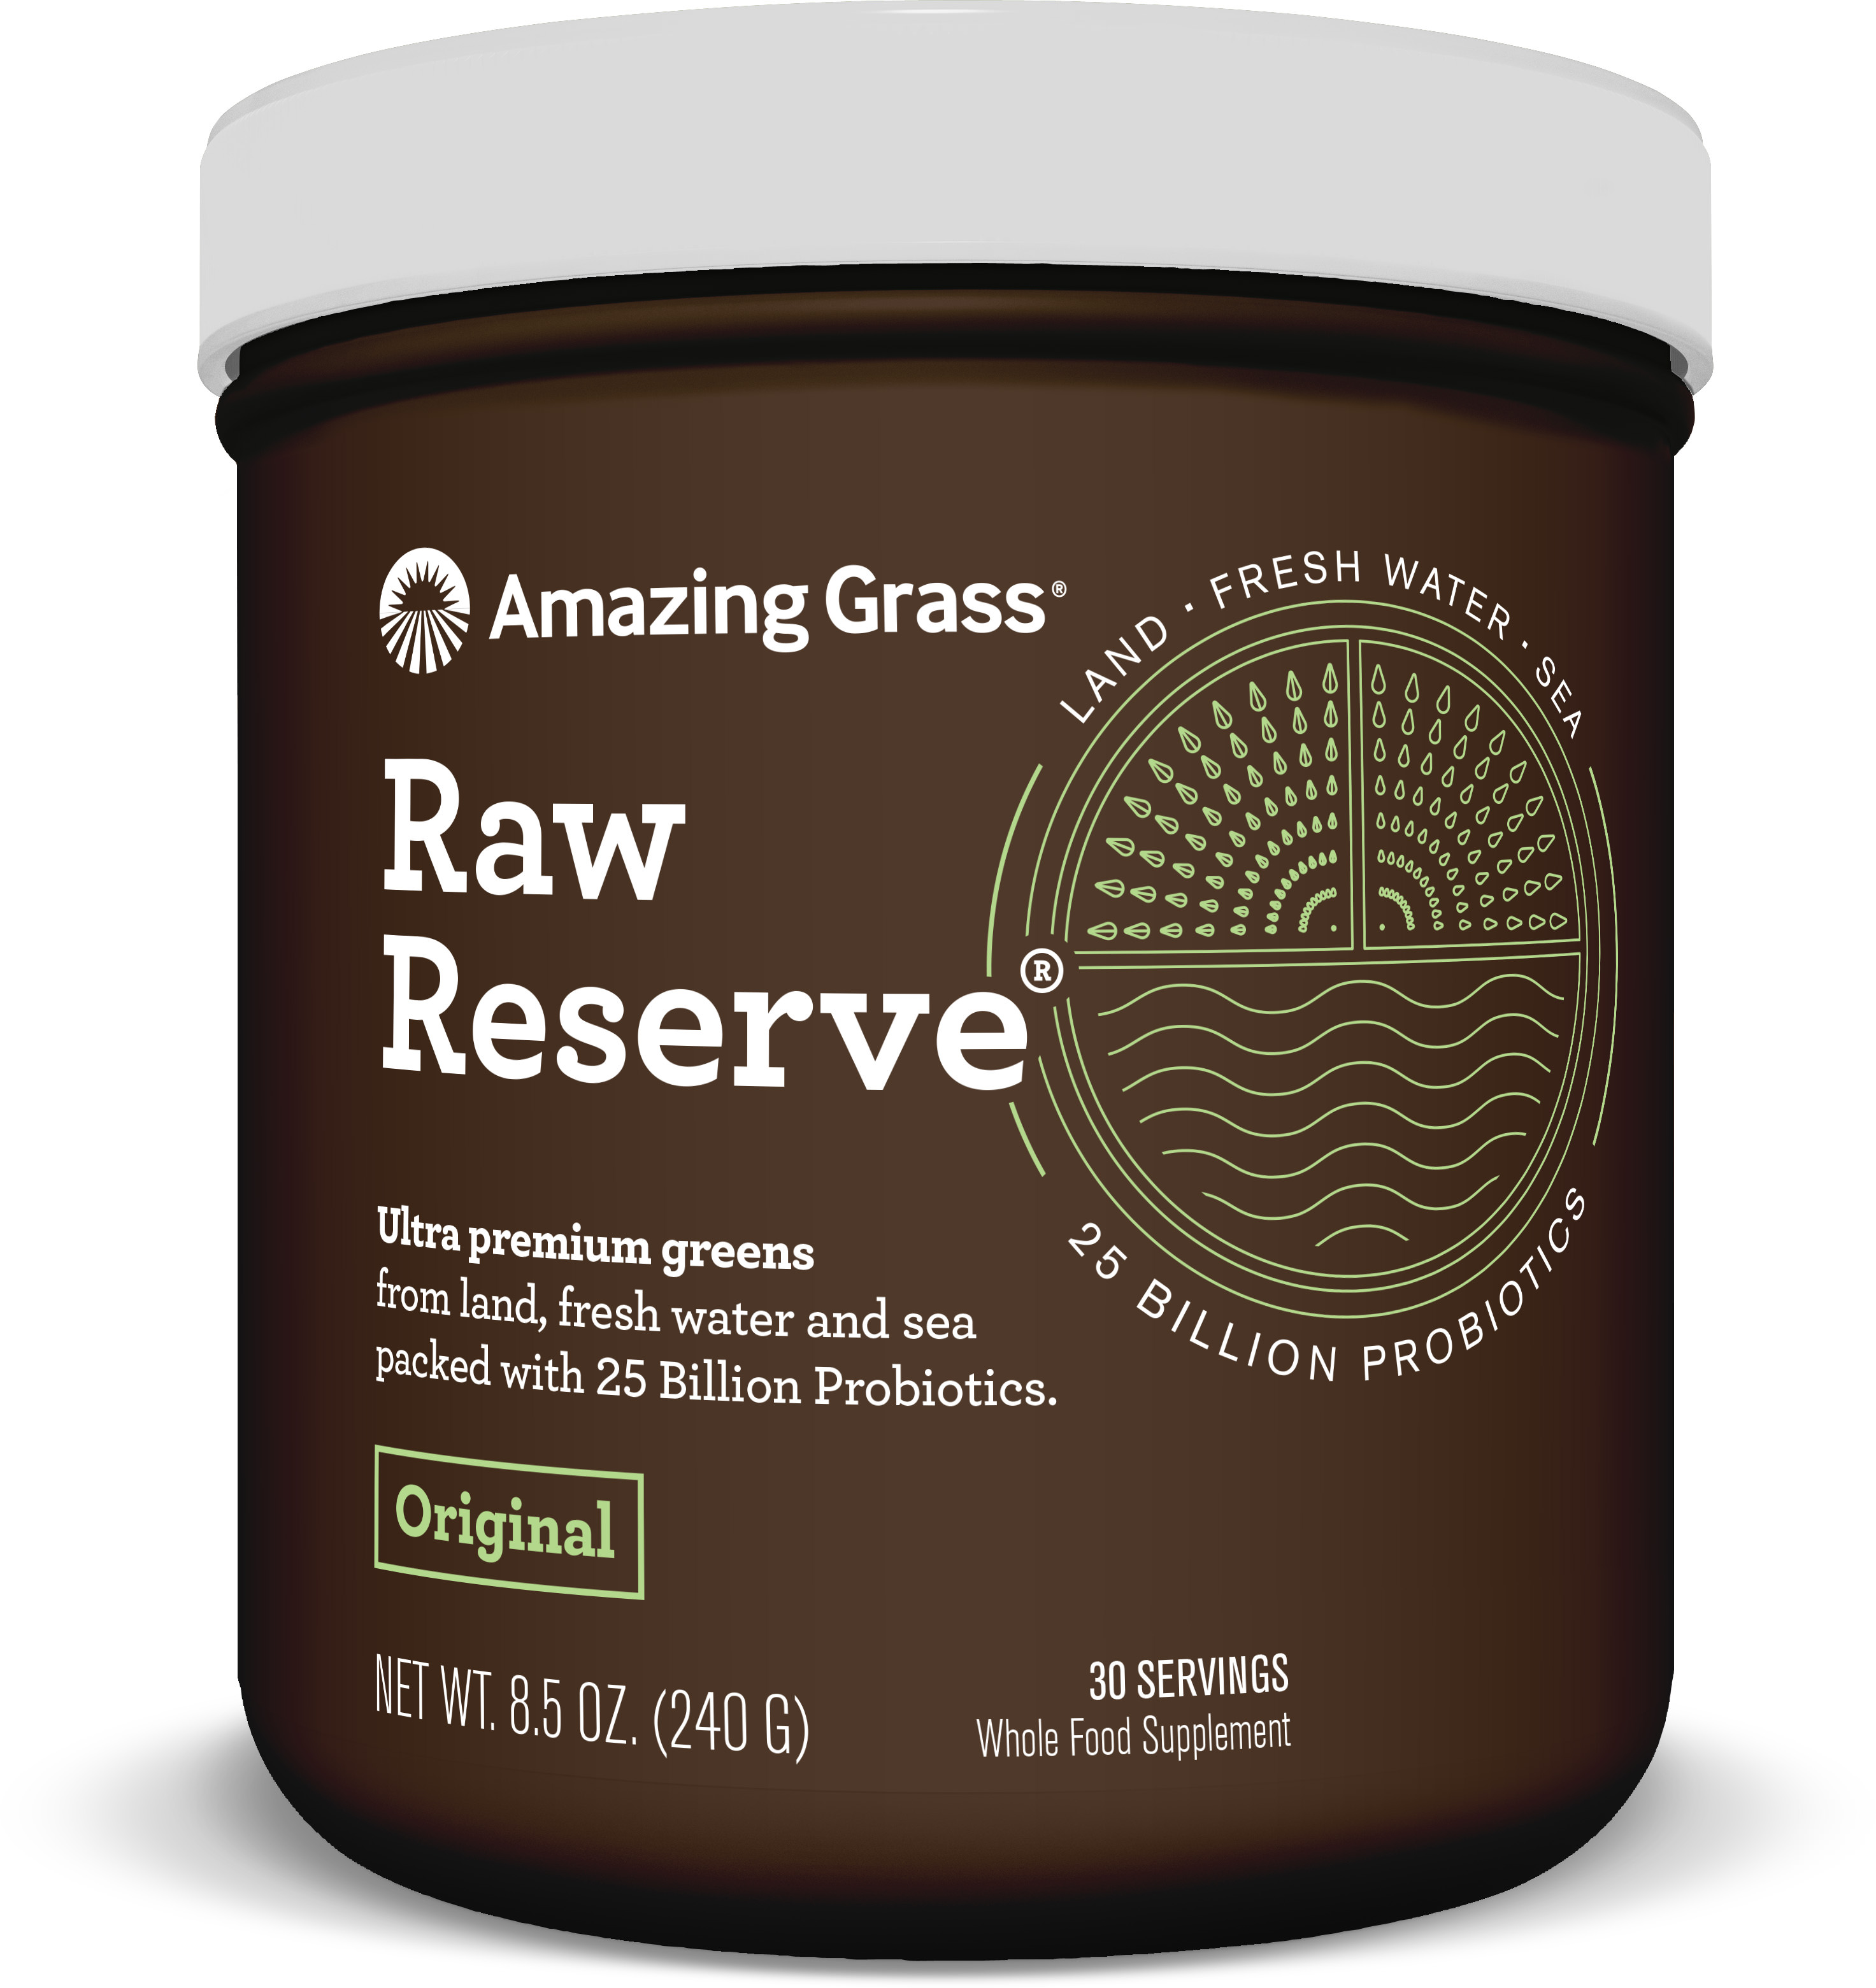 Amazing Grass Raw Reserve Green Superfood Powder, Original, 30 Servings